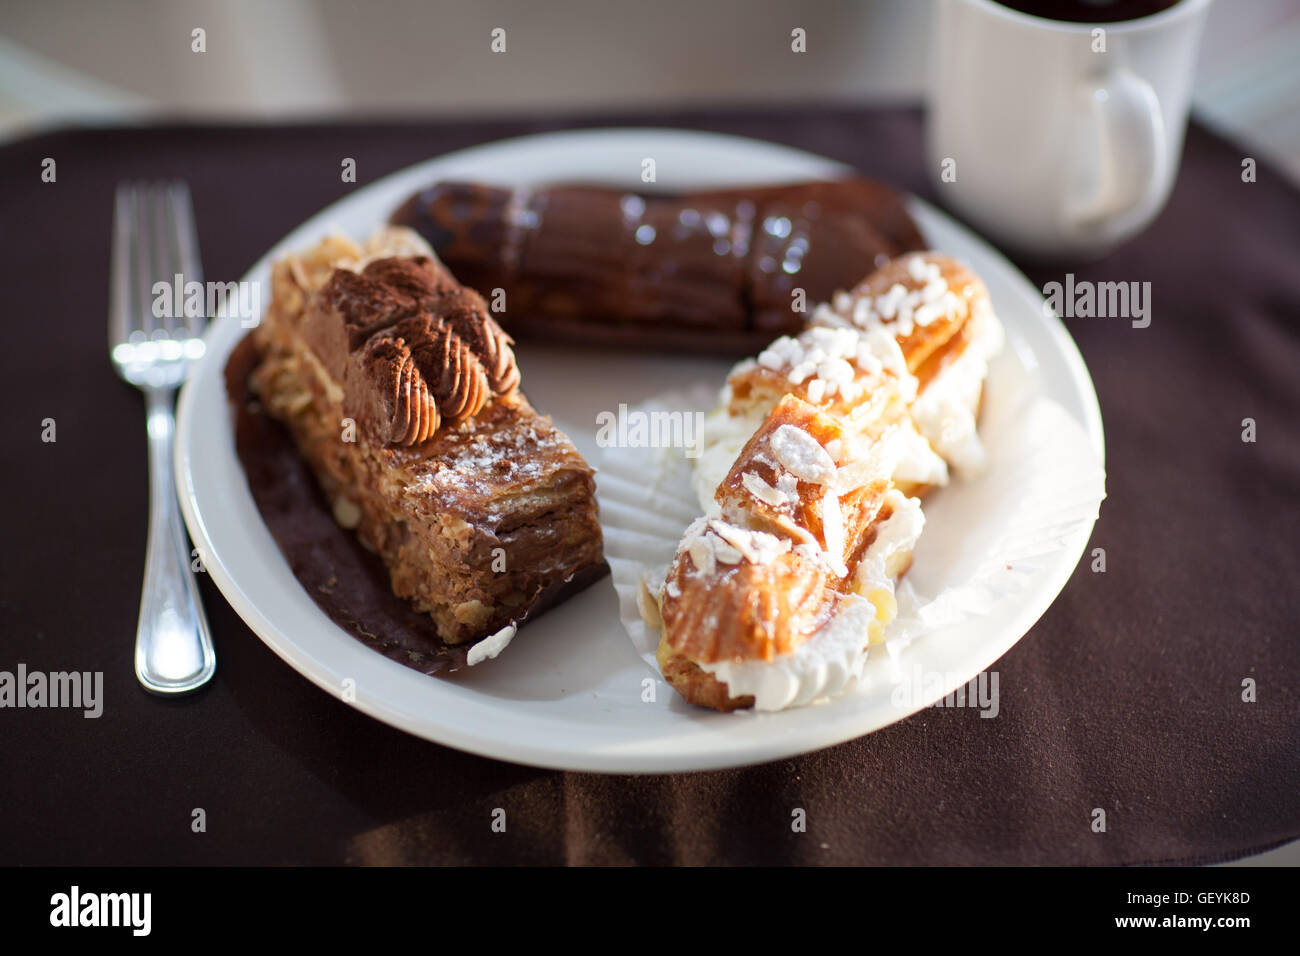 French Deserts on a Plate - Stock Image